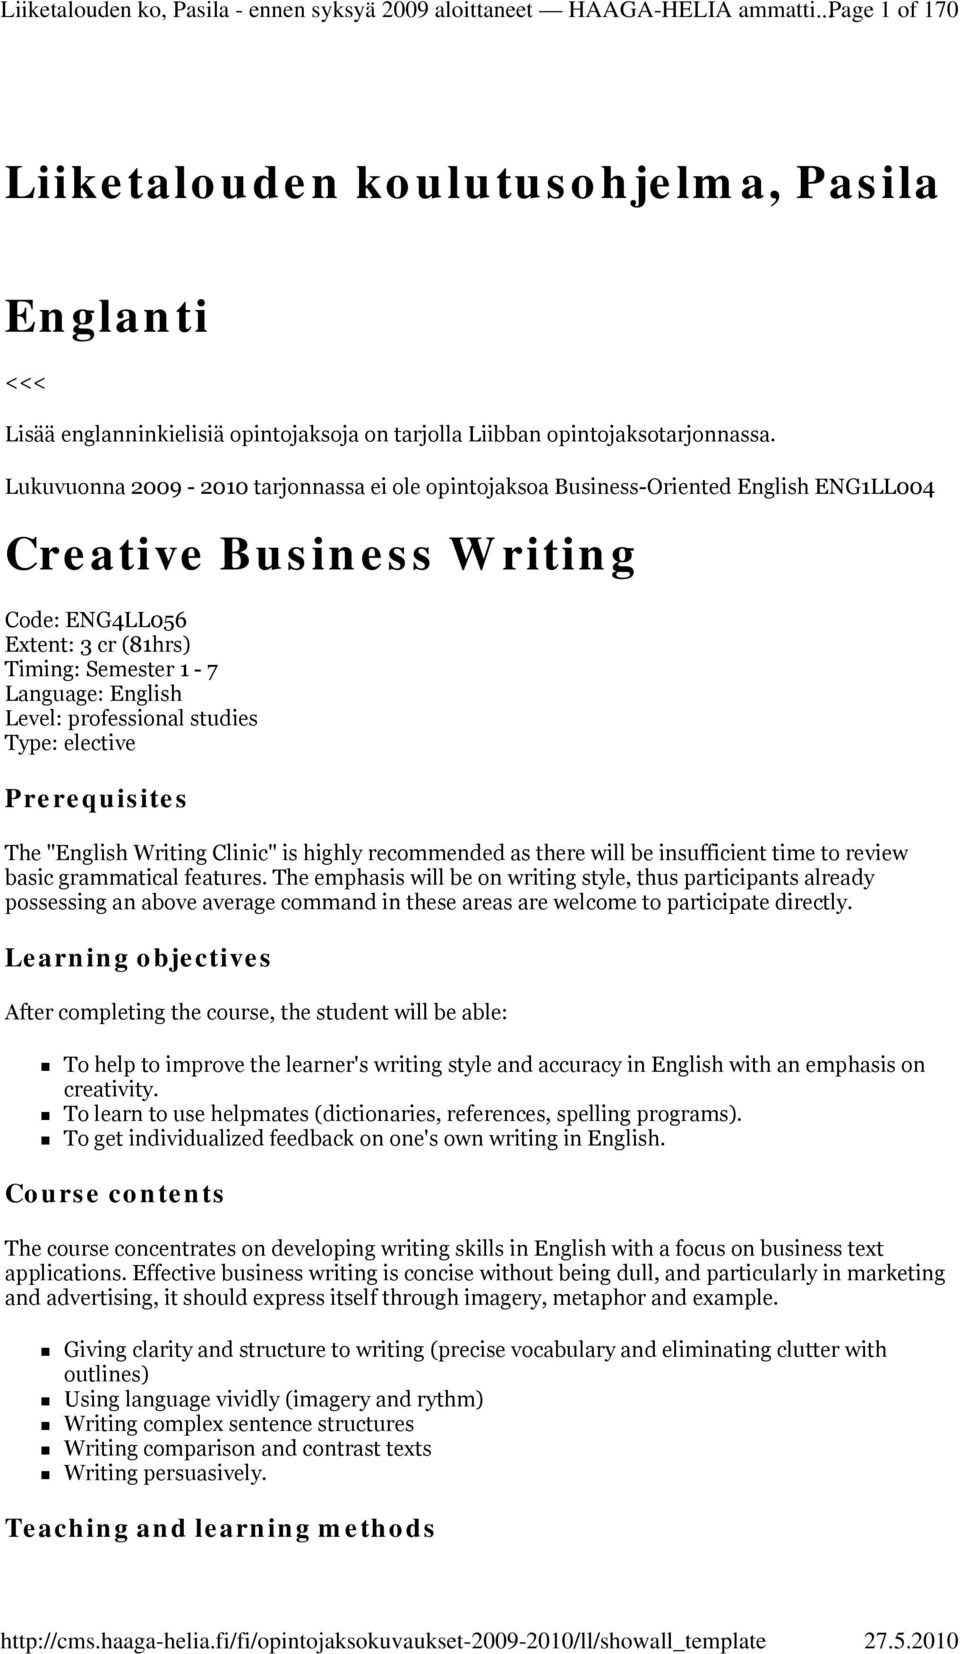 Lukuvuonna 2009-2010 tarjonnassa ei ole opintojaksoa Business-Oriented English ENG1LL004 Creative Business Writing Code: ENG4LL056 Extent: 3 cr (81hrs) Timing: Semester 1-7 Language: English Level: